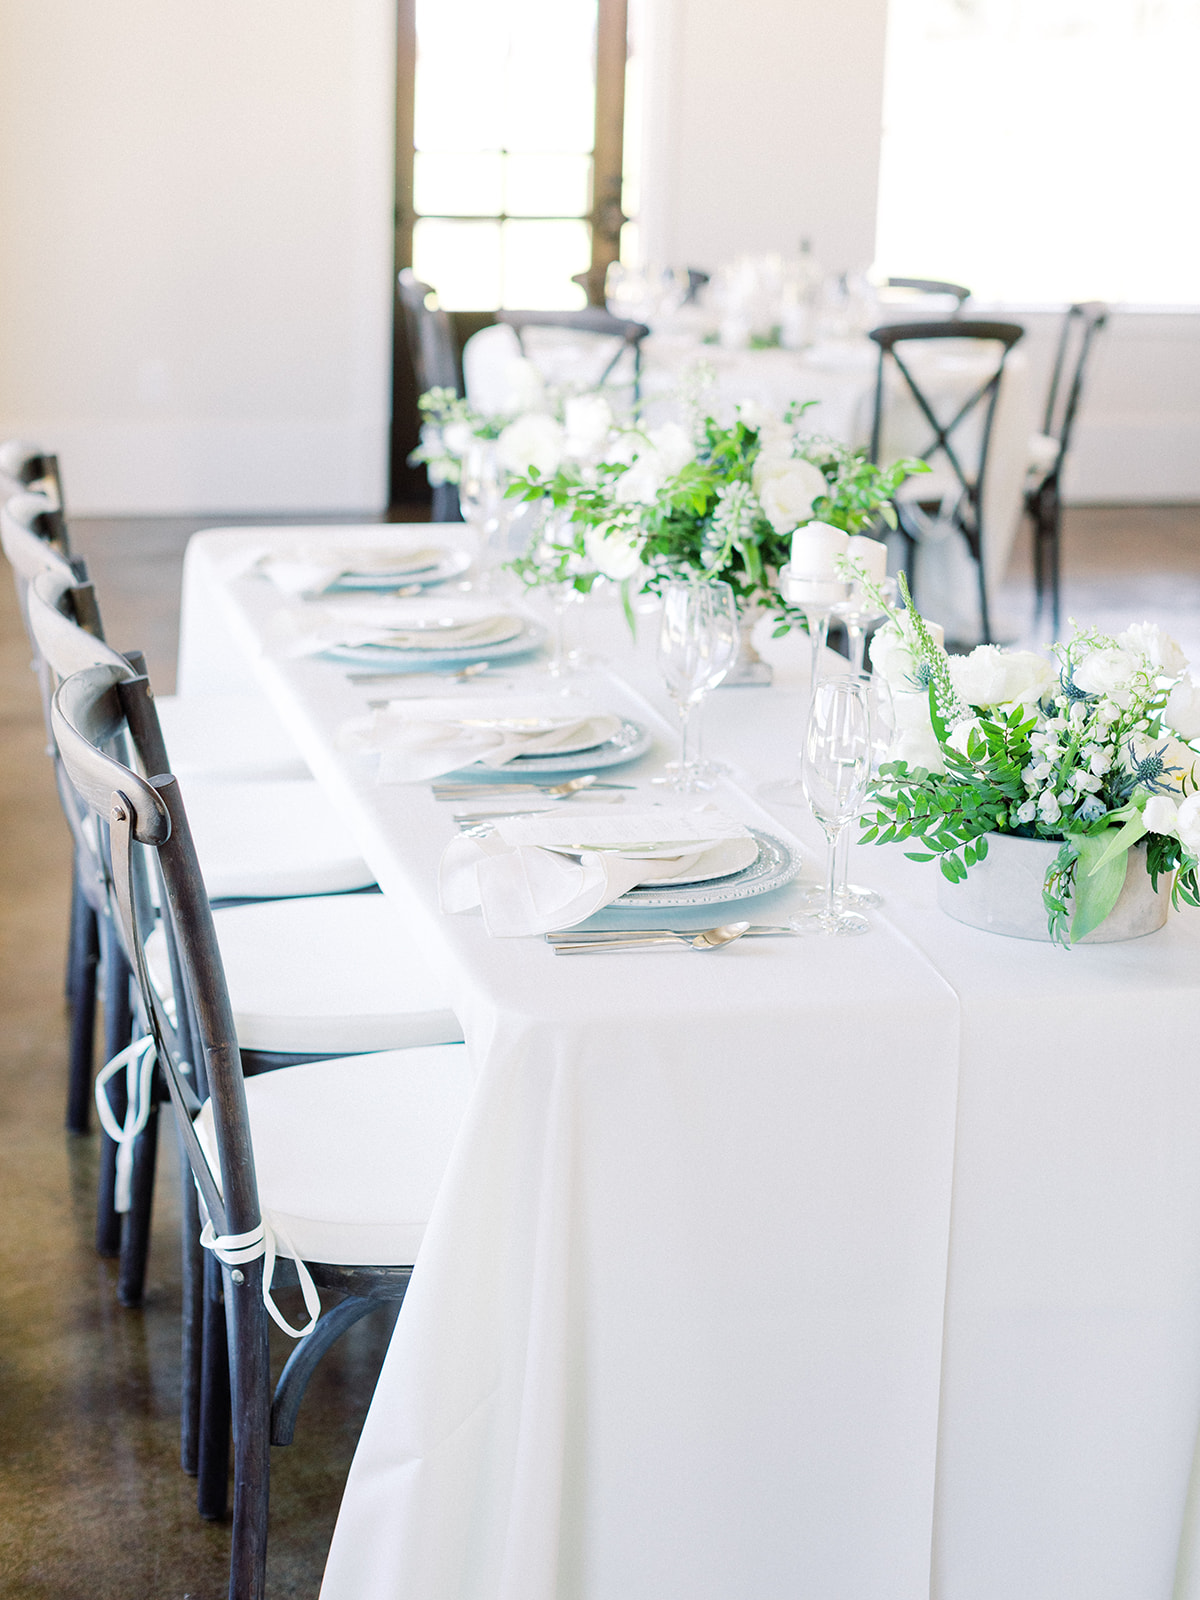 Simple wedding tablescape with greenery: Elopement vineyard wedding at Umbra Winery by Alexa Kay Events. See more wedding ideas at alexakayevents.com!